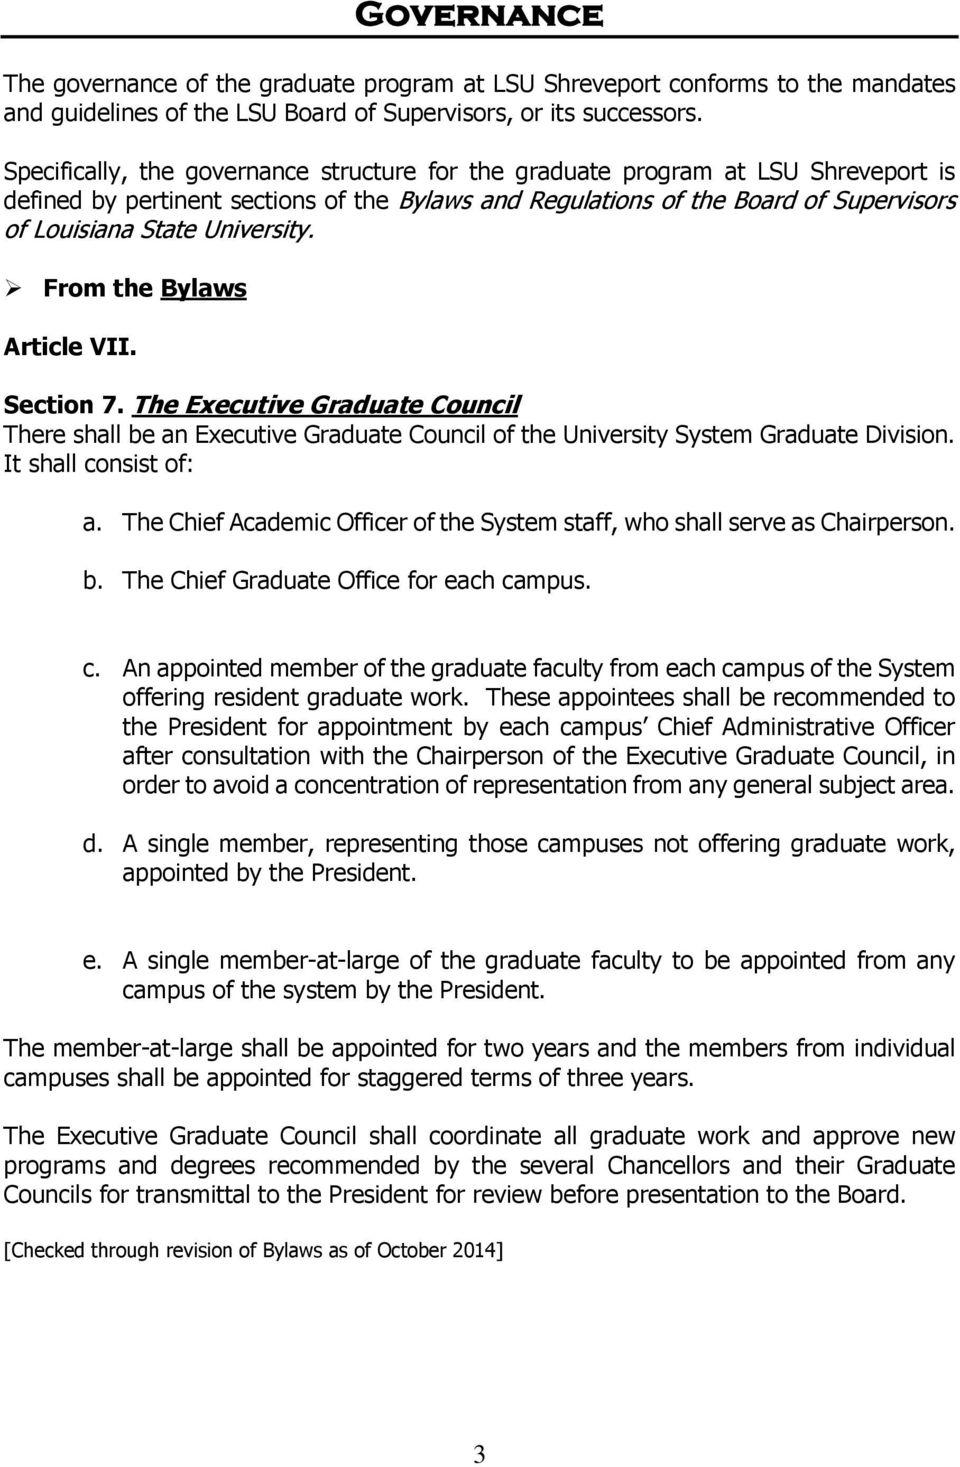 University. From the Bylaws Article VII. Section 7. The Executive Graduate Council There shall be an Executive Graduate Council of the University System Graduate Division. It shall consist of: a.